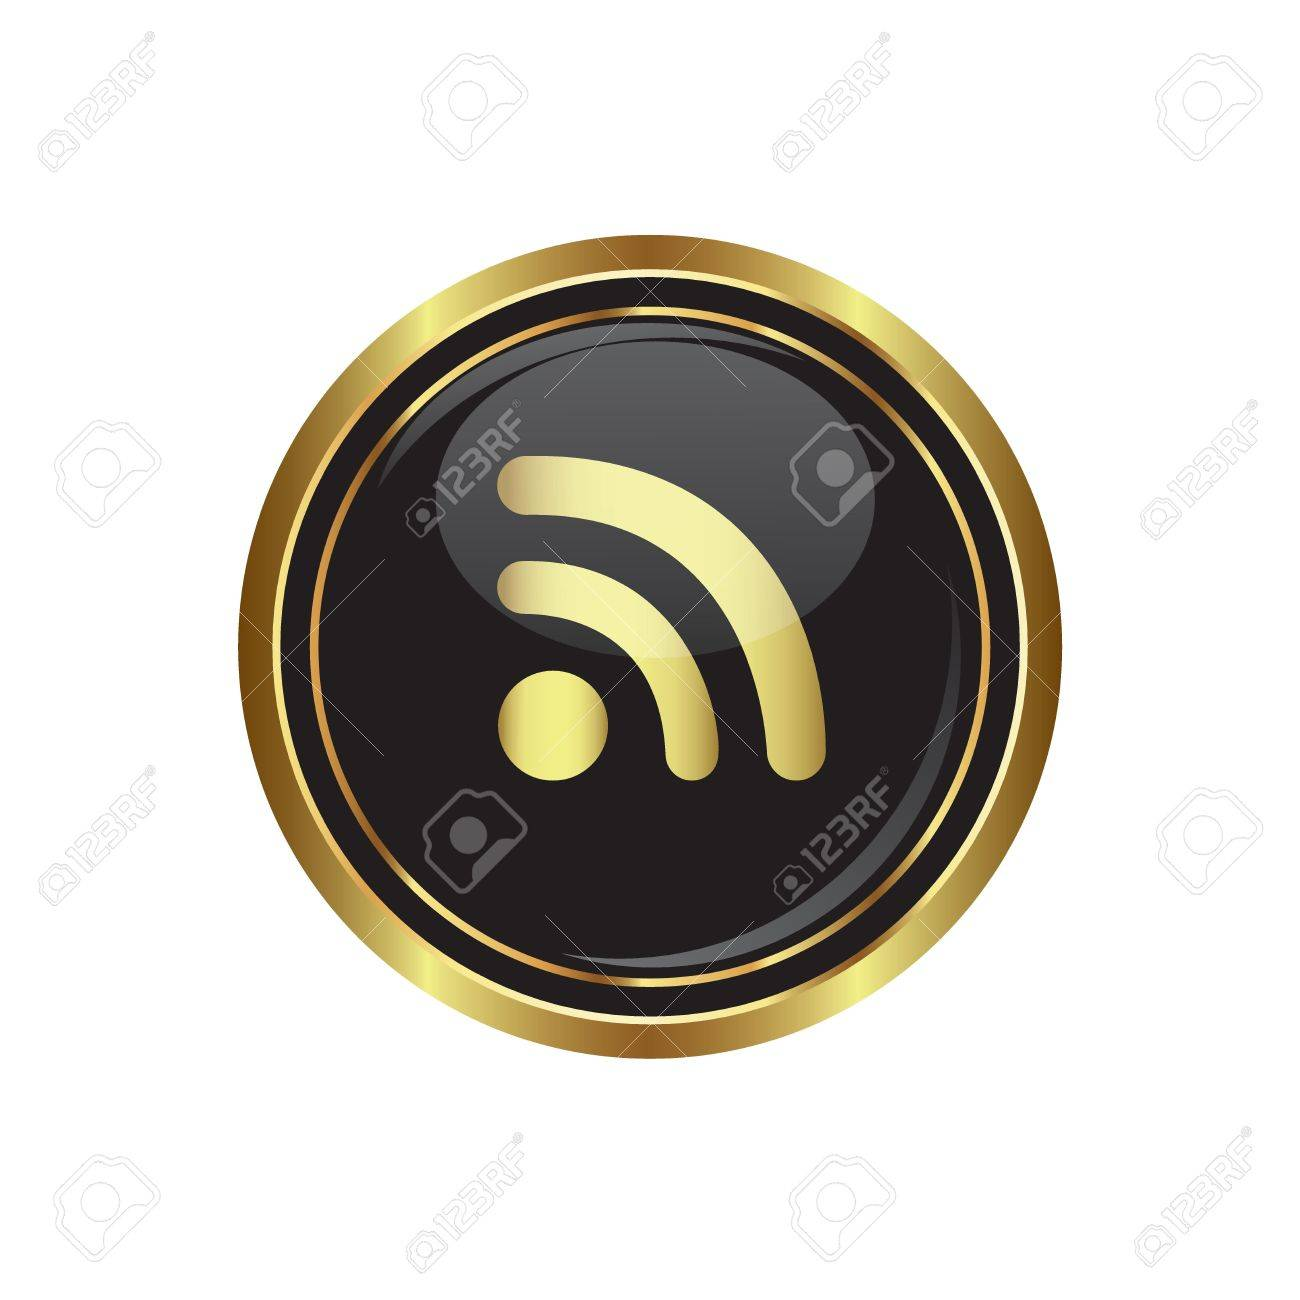 Rss icon on the black with gold round button  Vector illustration Stock Vector - 16710022